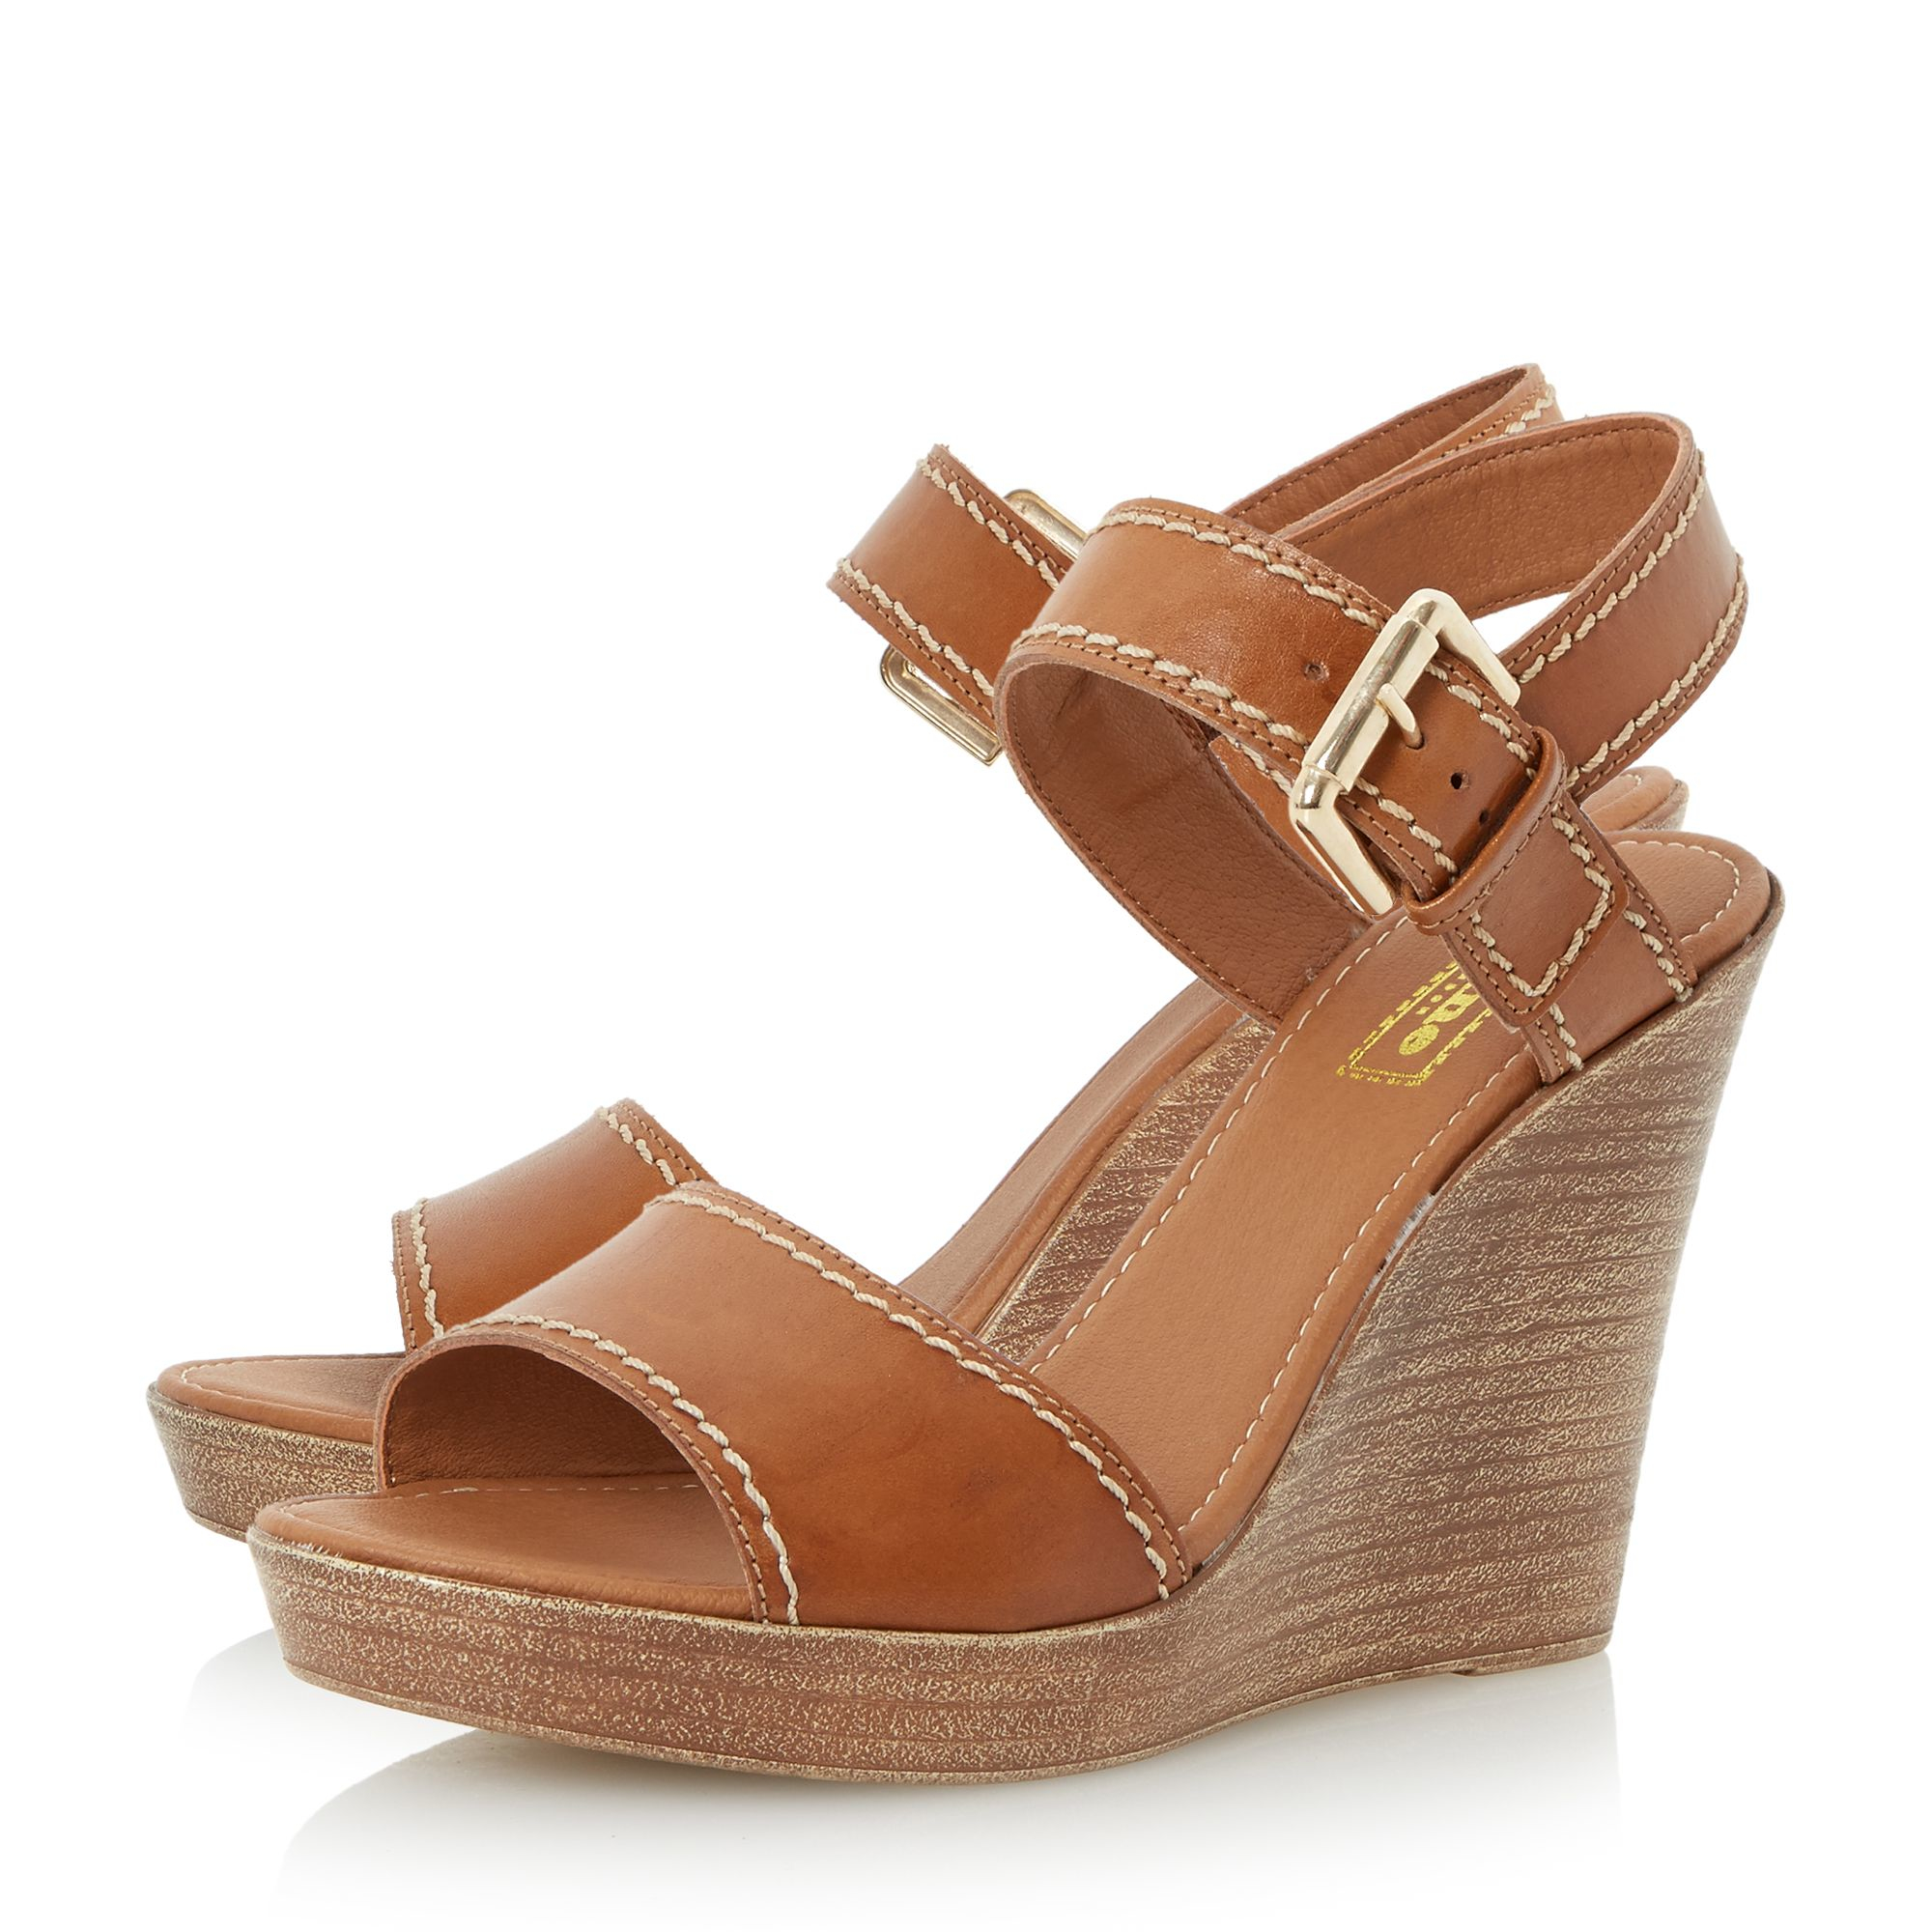 dune kamella stab stitch wedge shoes in multicolor